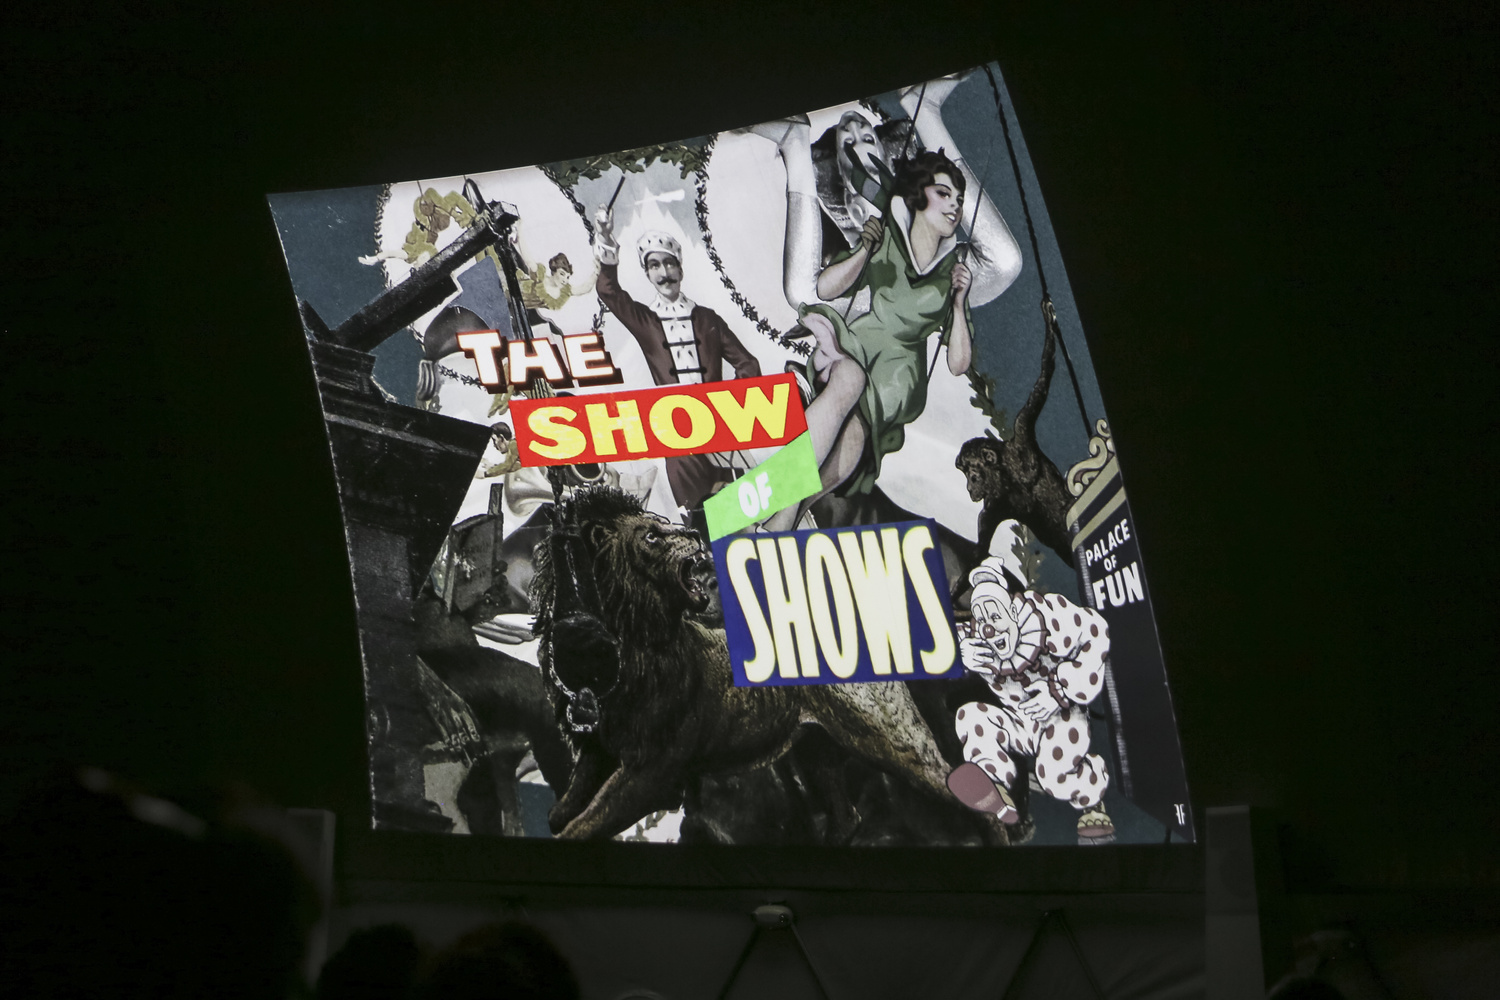 The Show of Shows: 100 Years of Vaudeville, Circuses and Carnivals on April 17, 2016, presented at MoMA PS1 as part of VW Sunday Sessions 2015-2016. Photo by Charles Roussel.